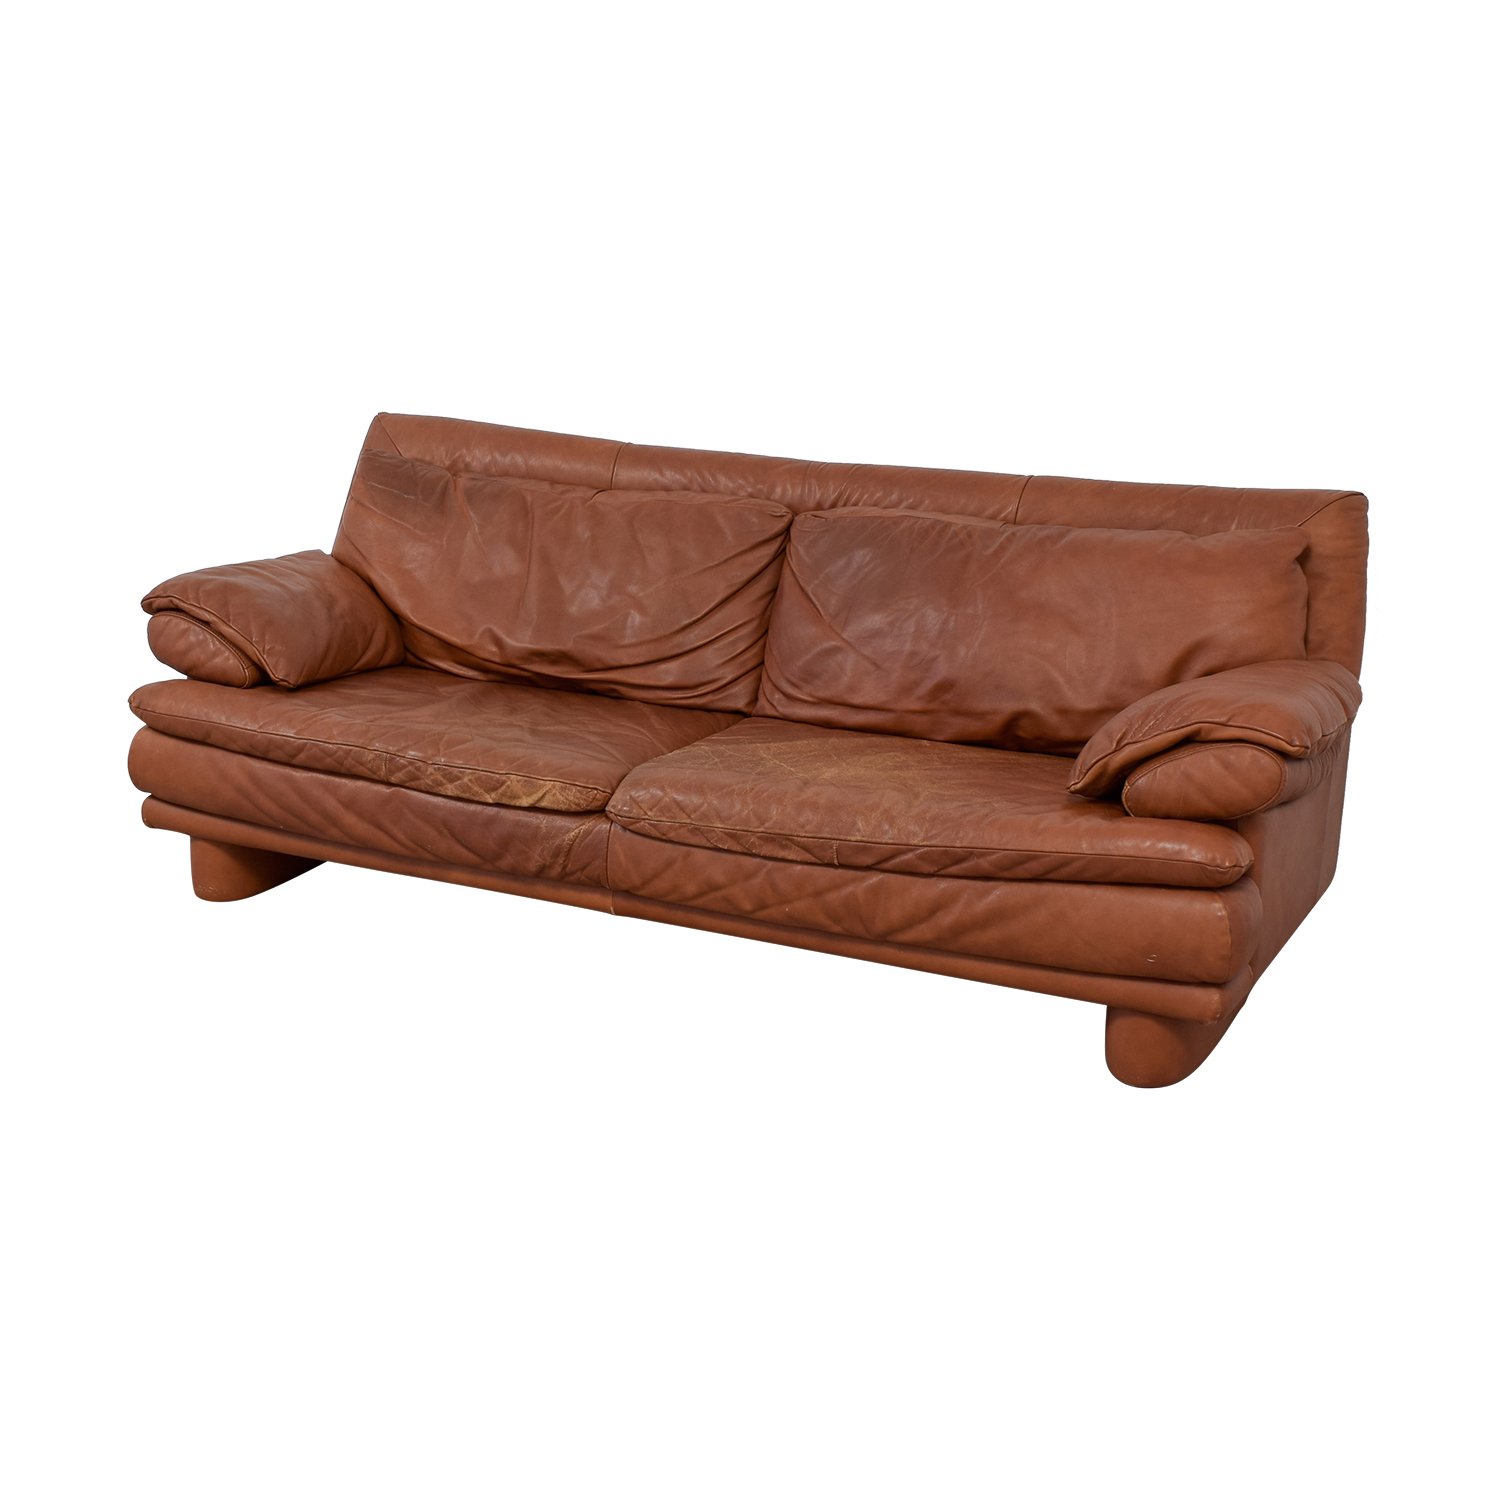 Maurice Villency Maurice Villency Brown Leather Sofa discount